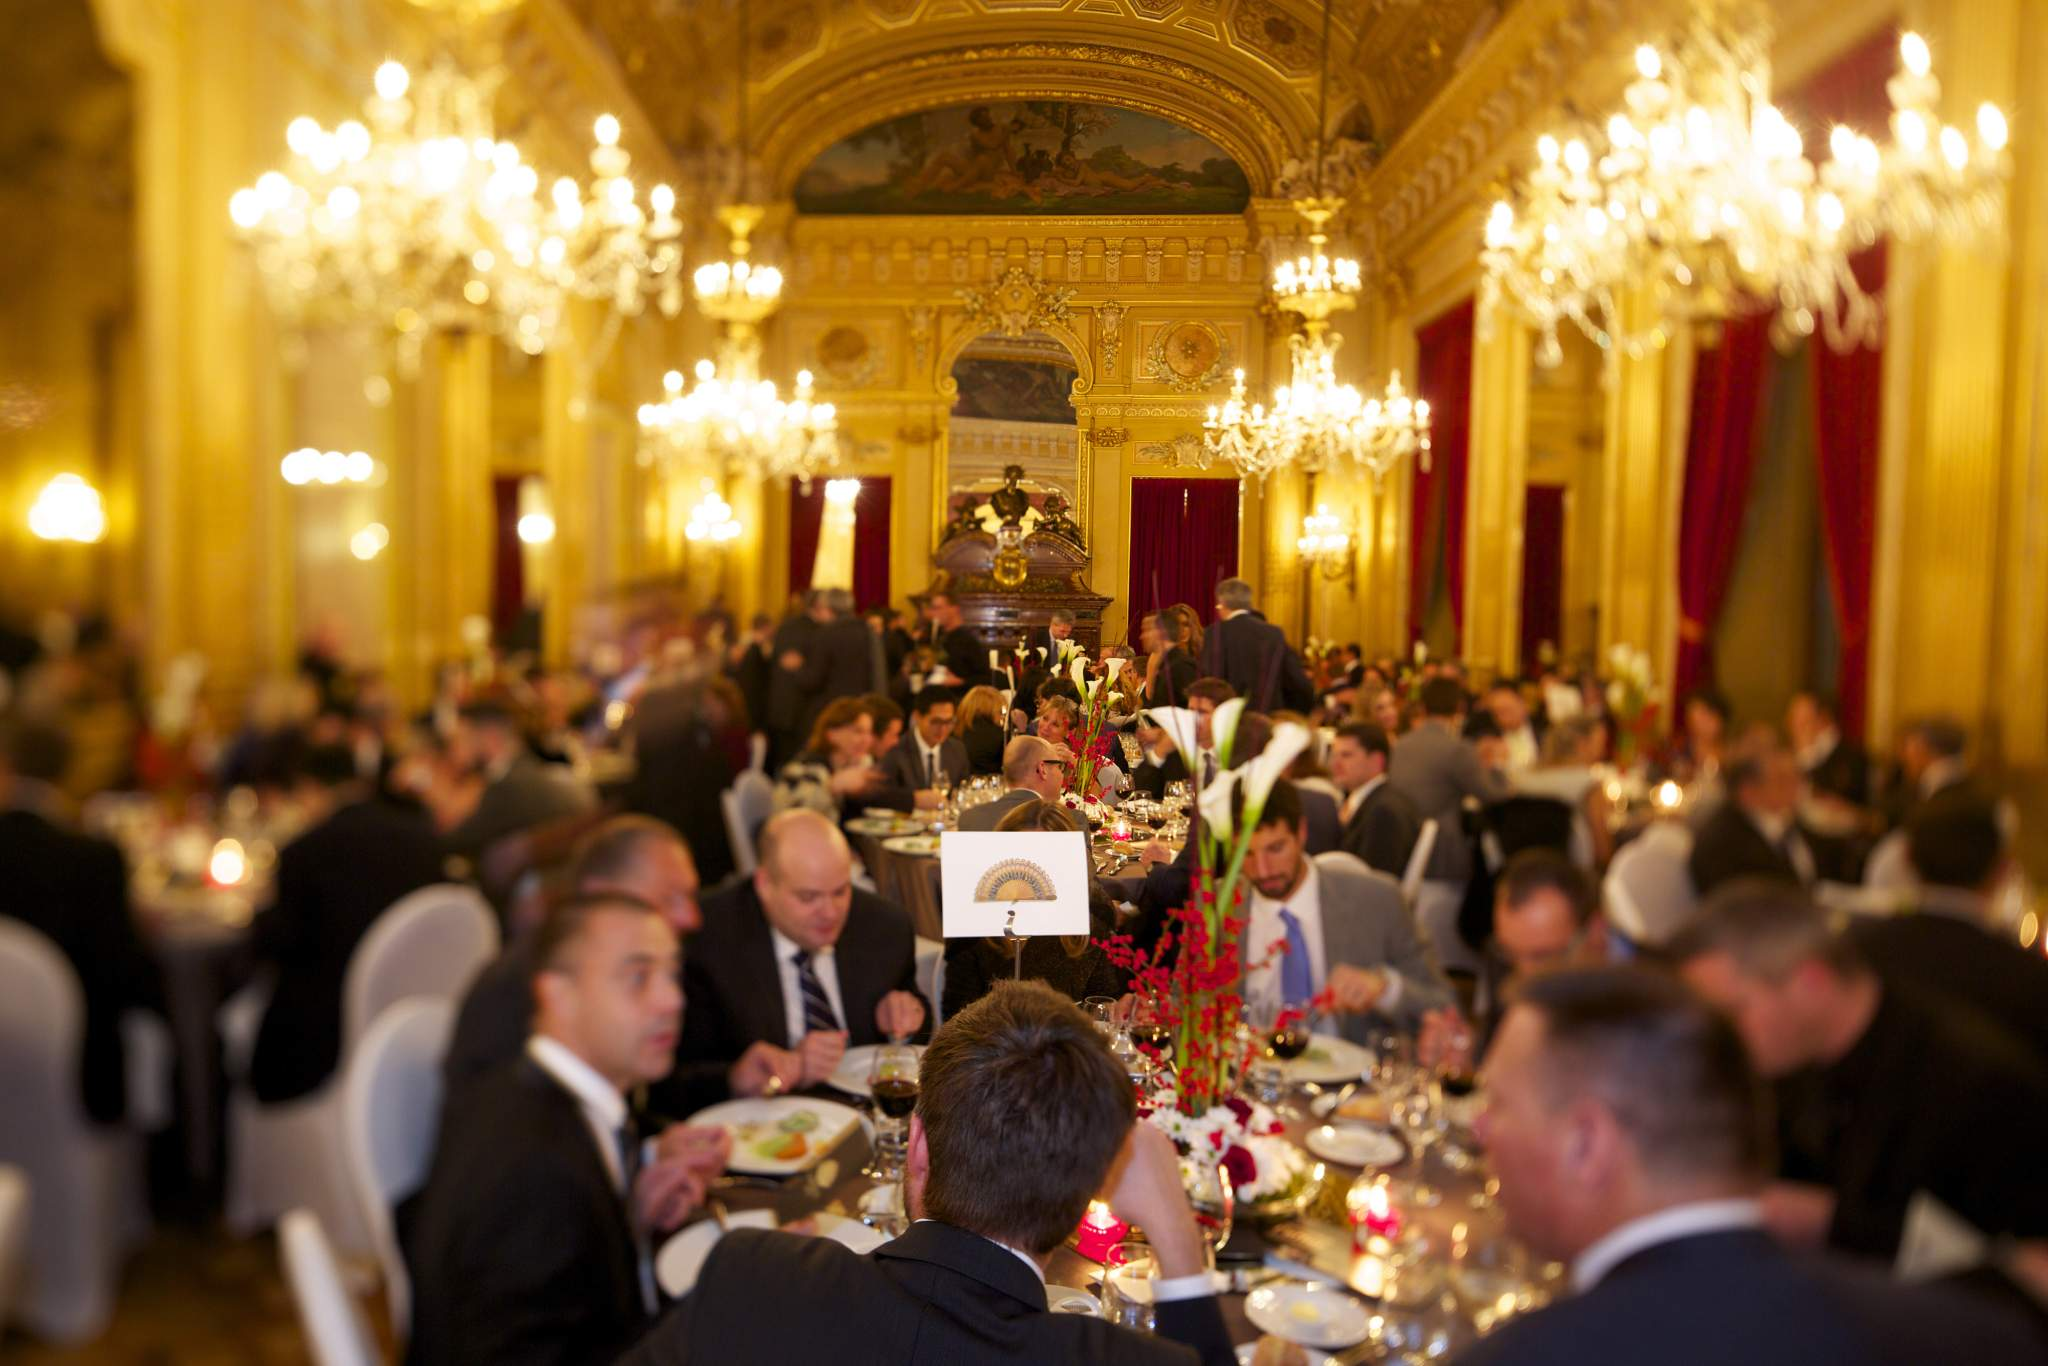 Gala dinner of the GPHG 2015 at the Grand Théâtre de Genève